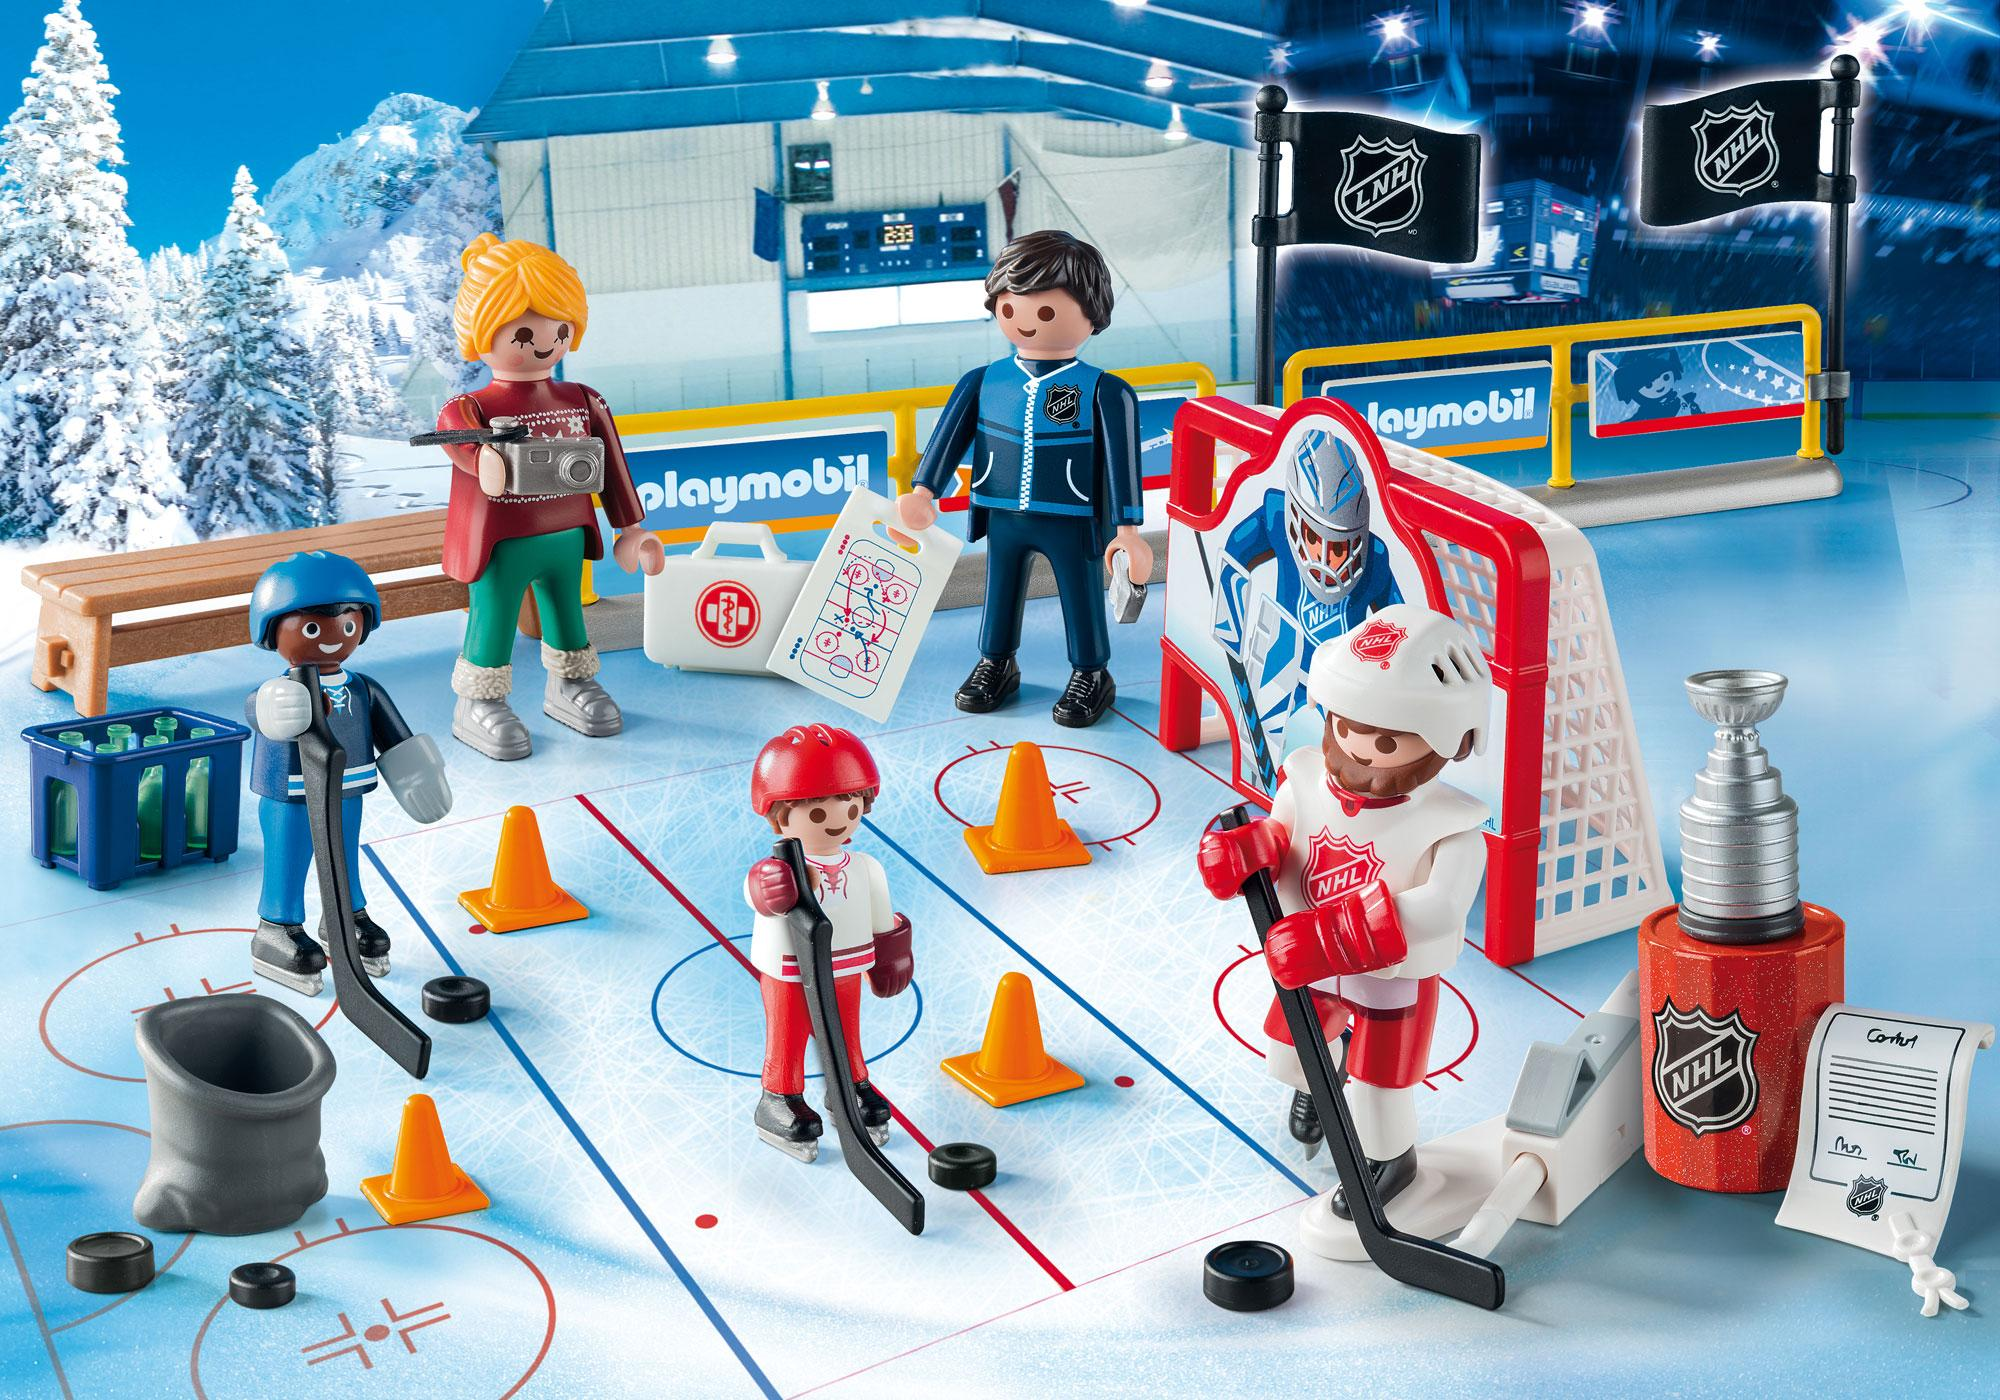 http://media.playmobil.com/i/playmobil/9294_product_extra1/NHL® Advent Calendar - Road to the Stanley Cup®